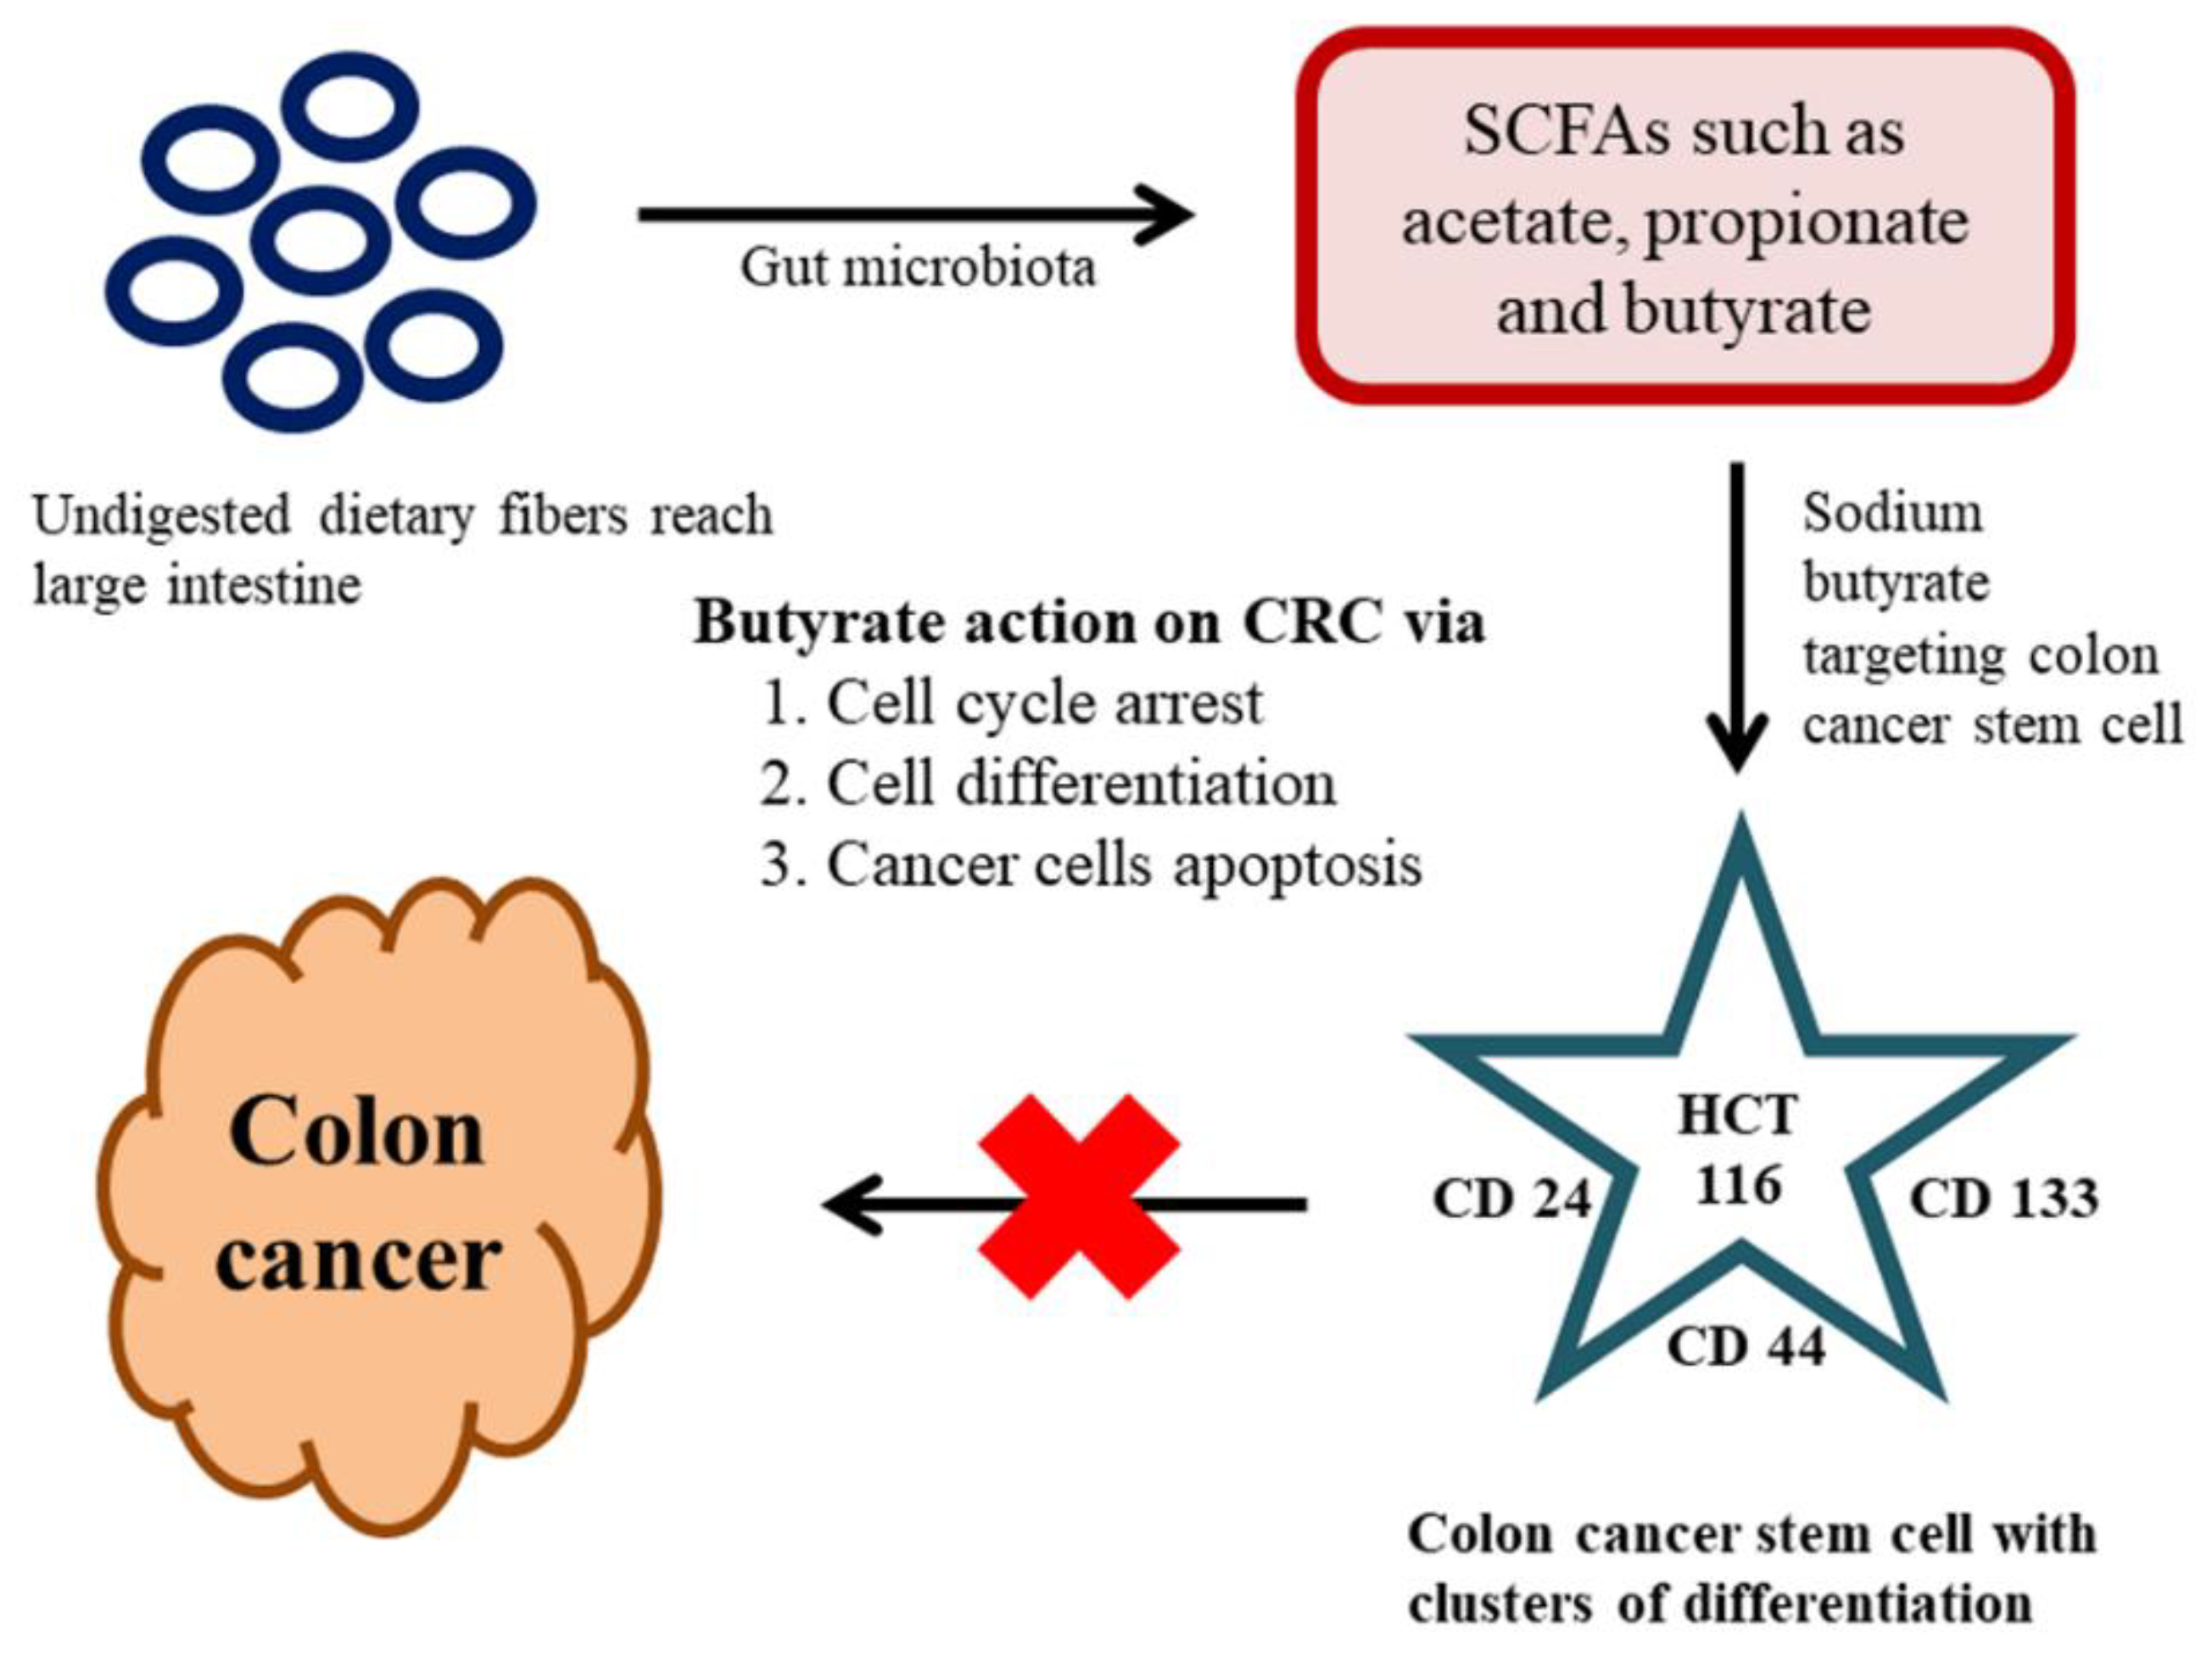 Ijms Free Full Text Diet Derived Phytochemicals Targeting Colon Cancer Stem Cells And Microbiota In Colorectal Cancer